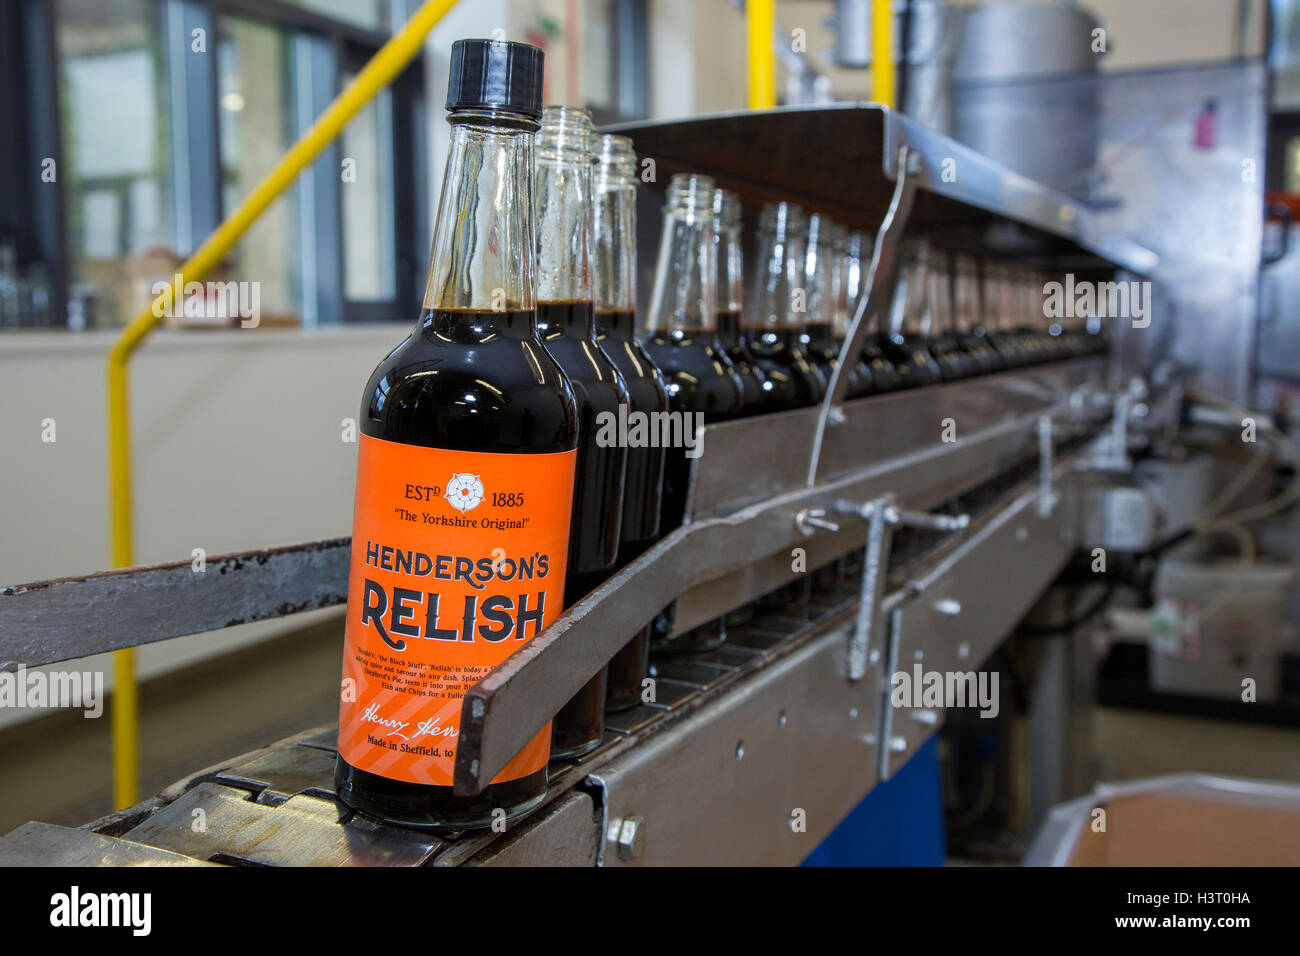 Hendersons Relish a condiment similar to Worcester Sauce relish has been produced in Sheffield, South Yorkshire - Stock Image